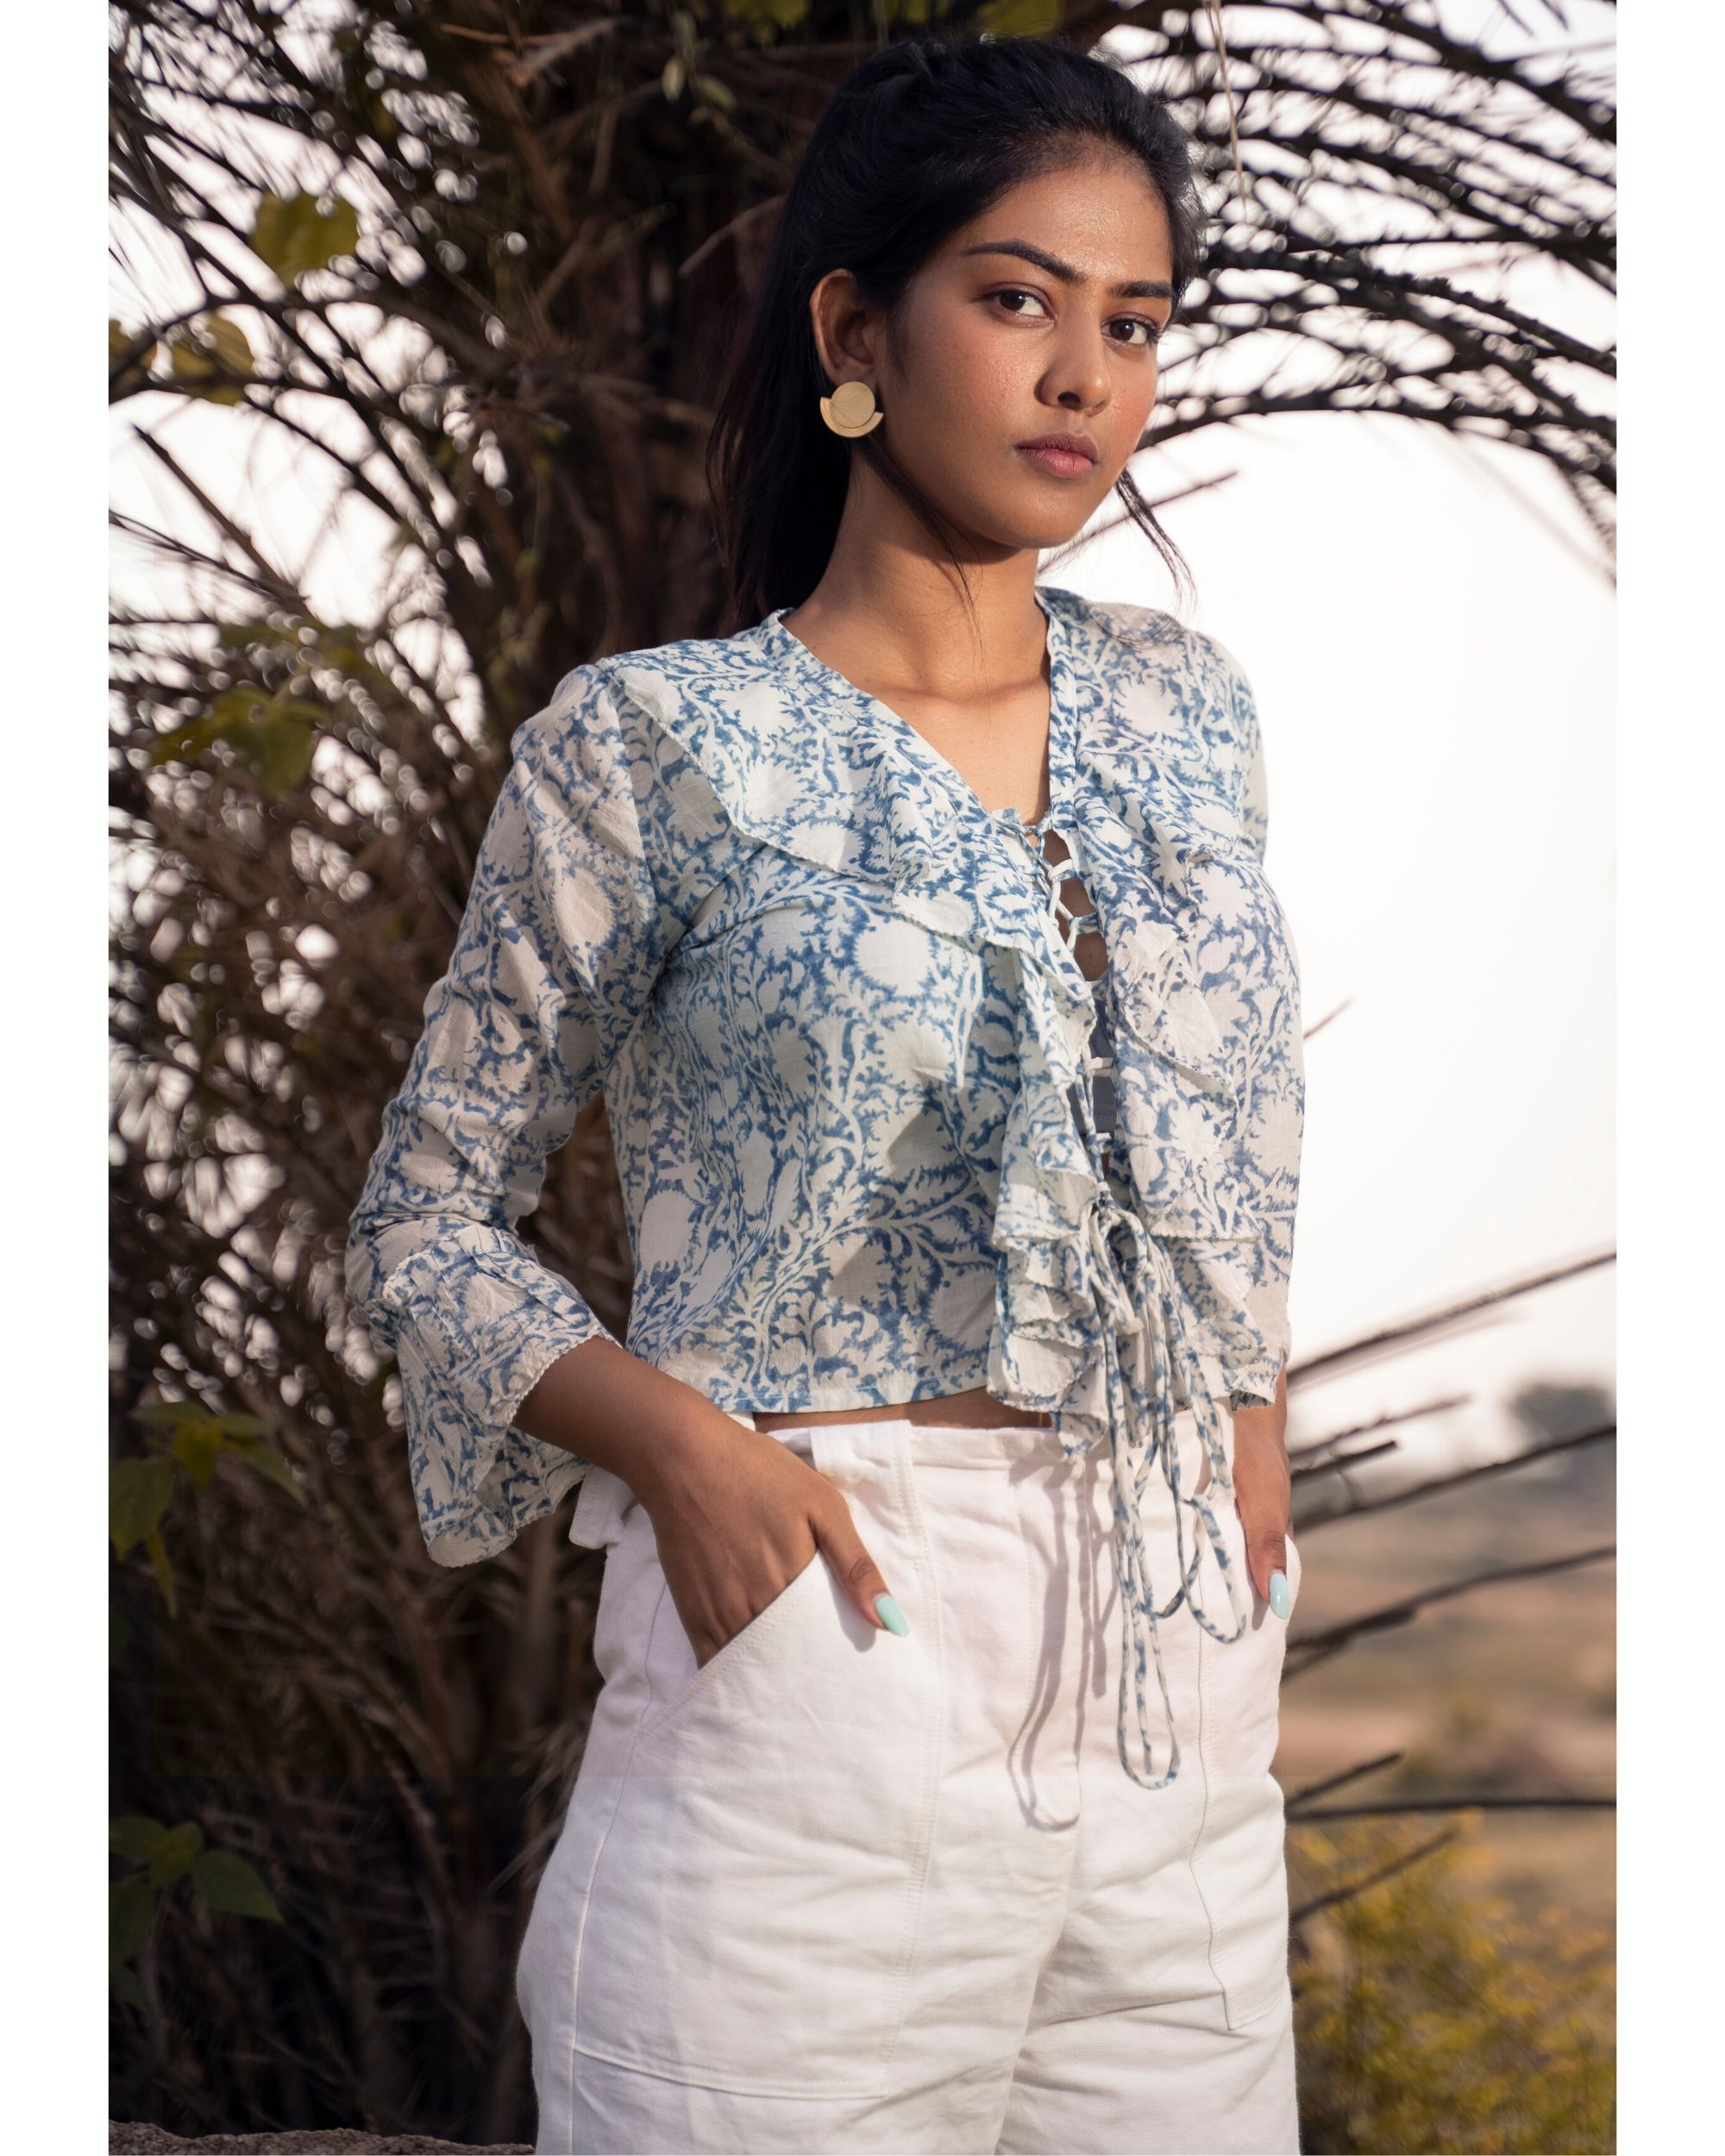 Blue and white victorian ruffle top